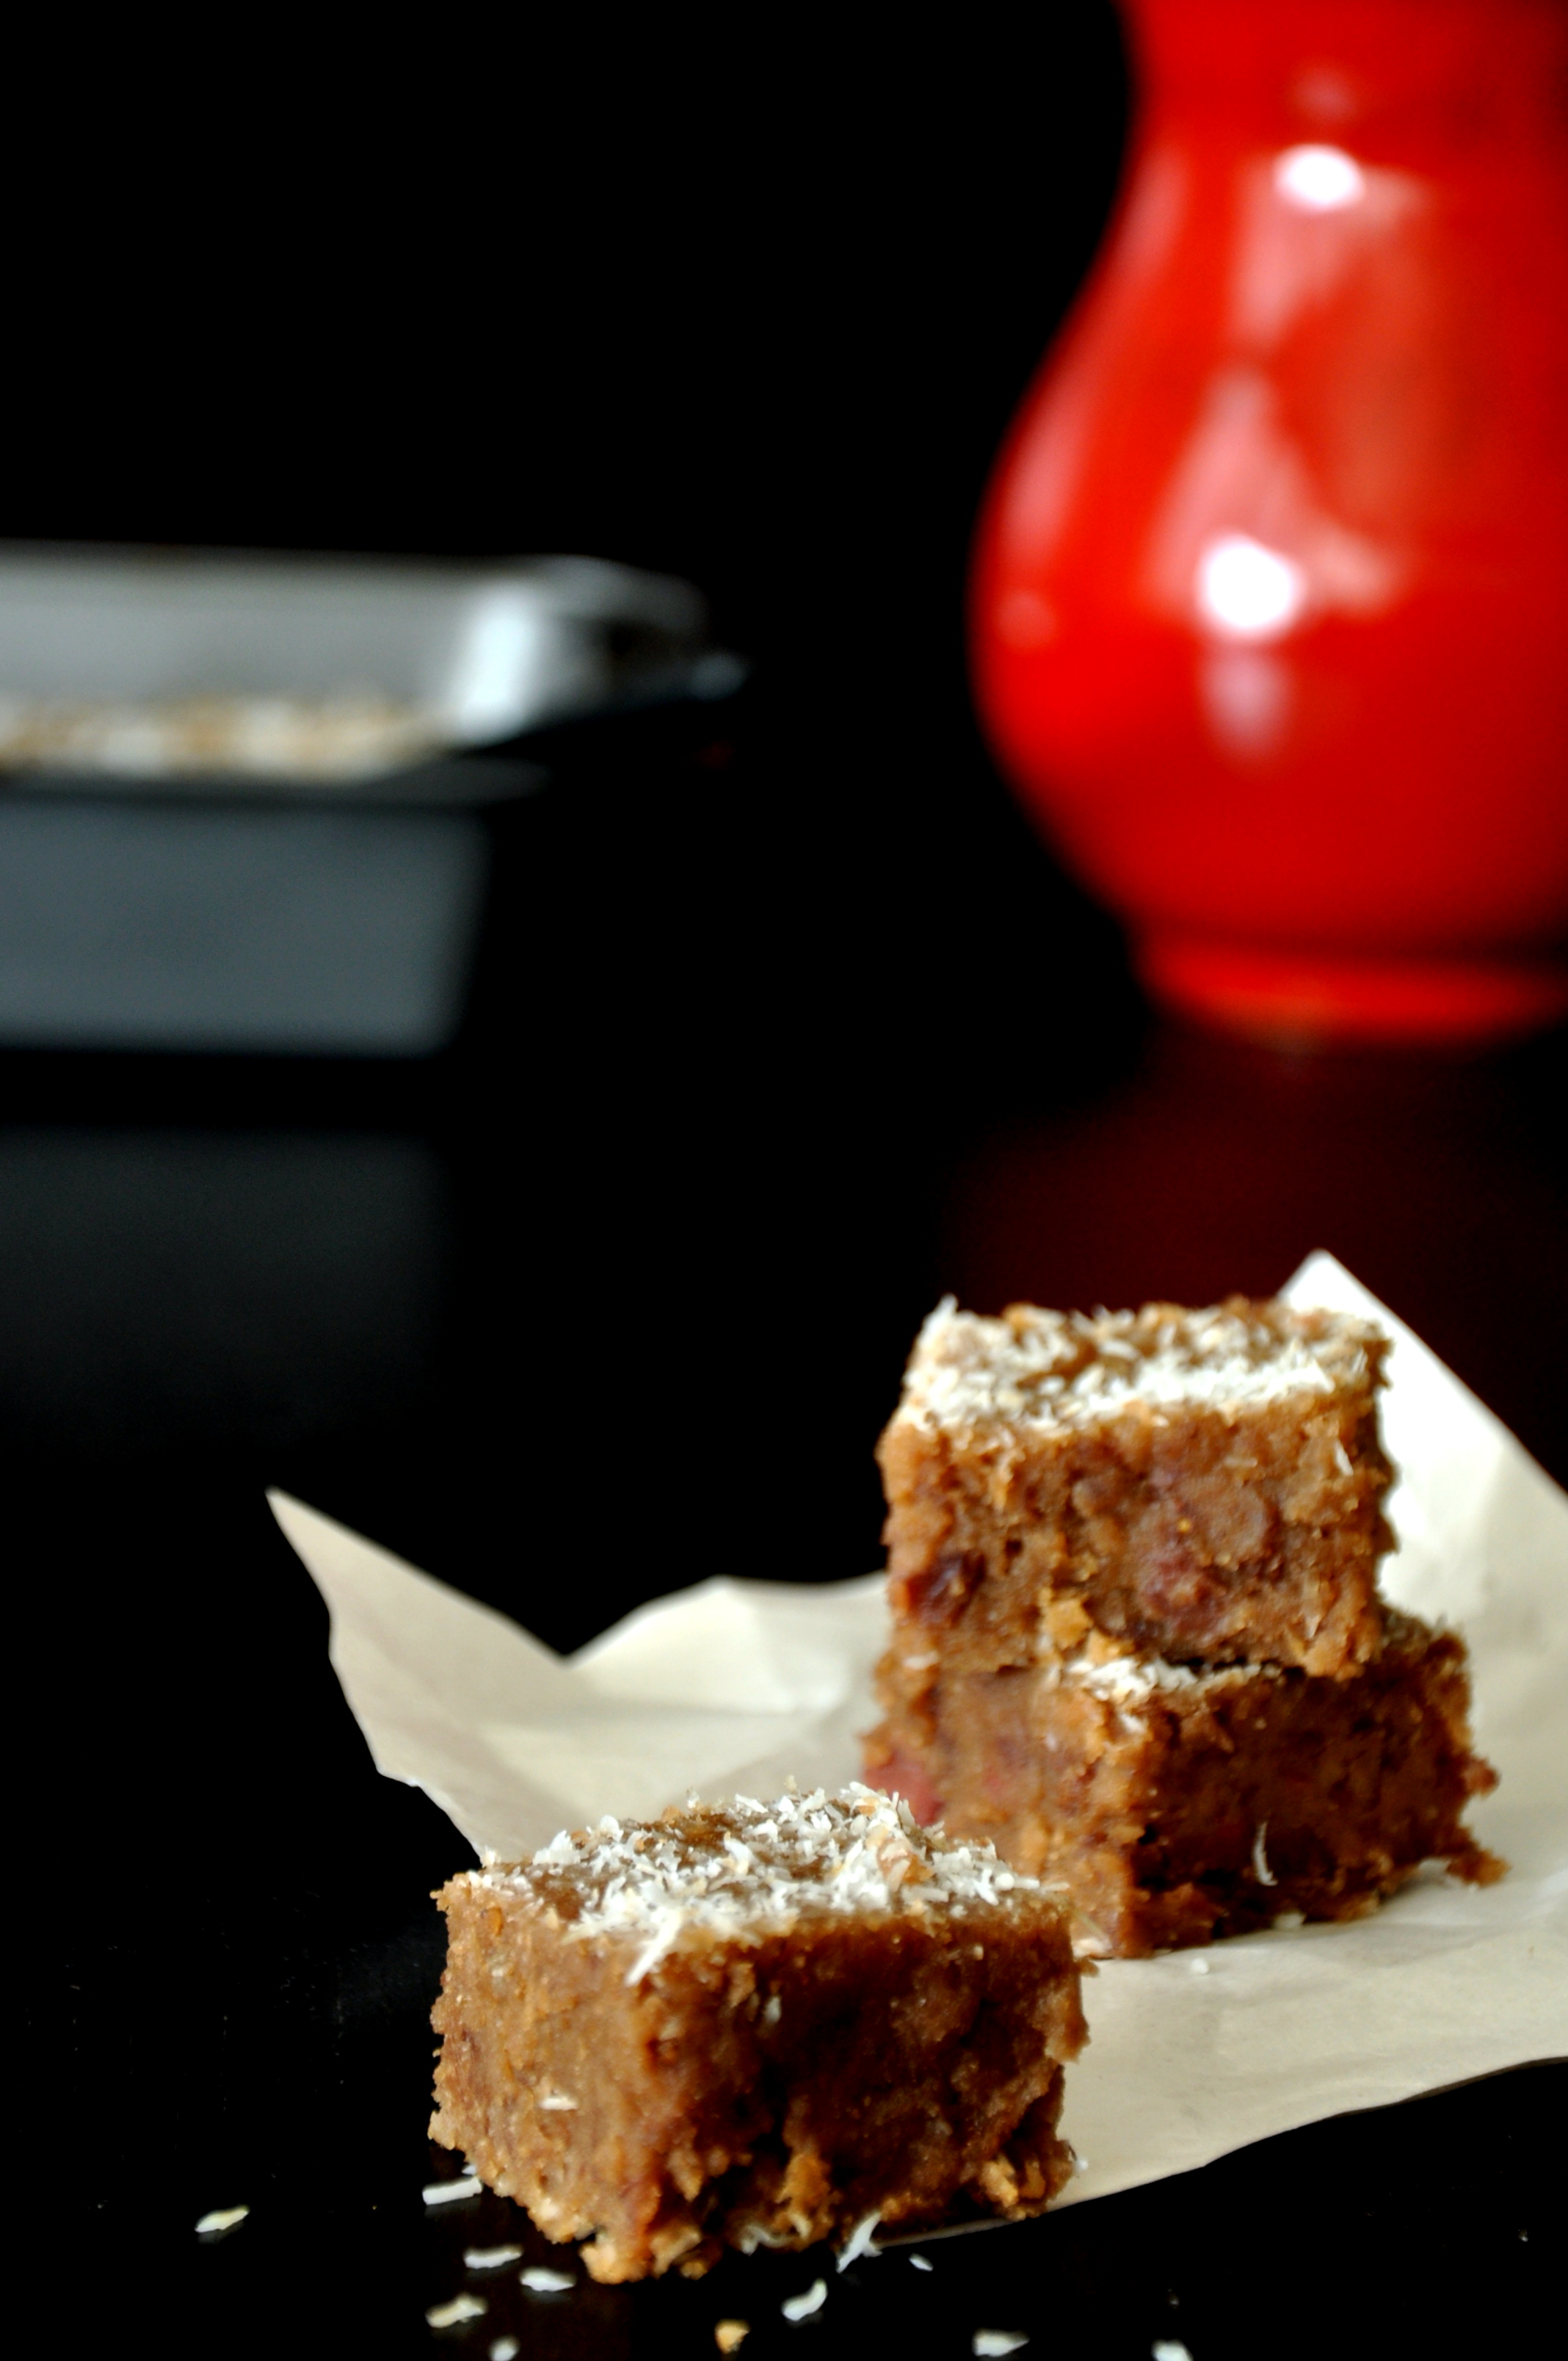 2013-08-01-StrawberryJaggeryBrownies1.JPG